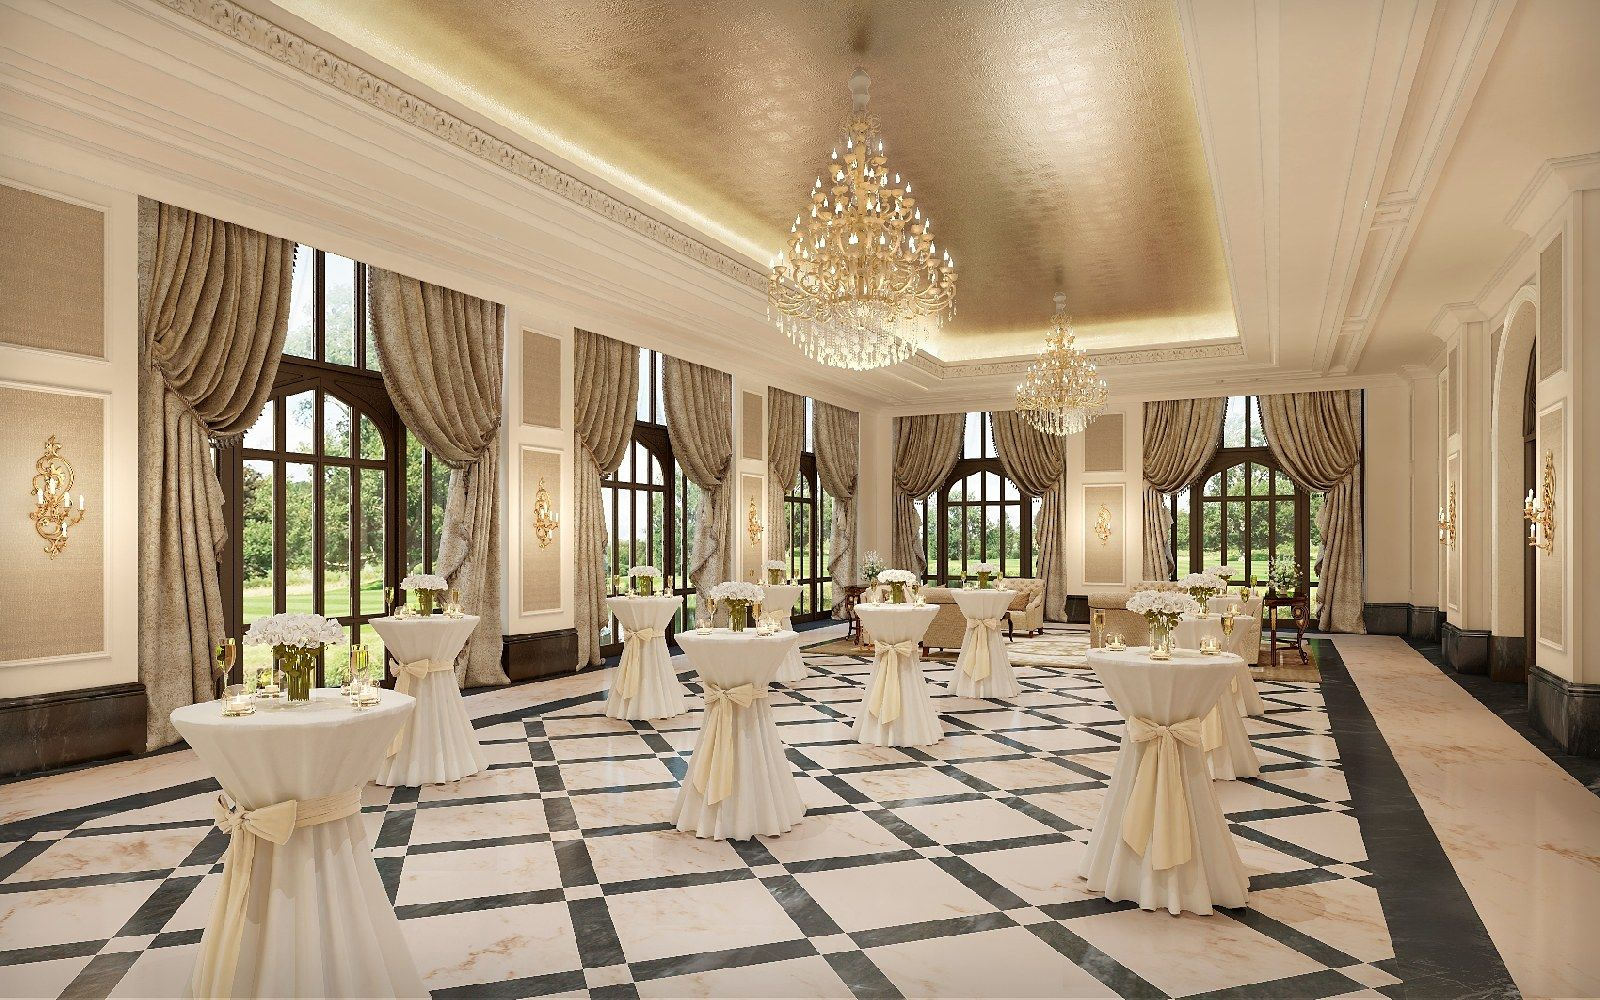 A Luxury Wedding Venue In Ireland Adare Manor Is One Of The Top 5 Star